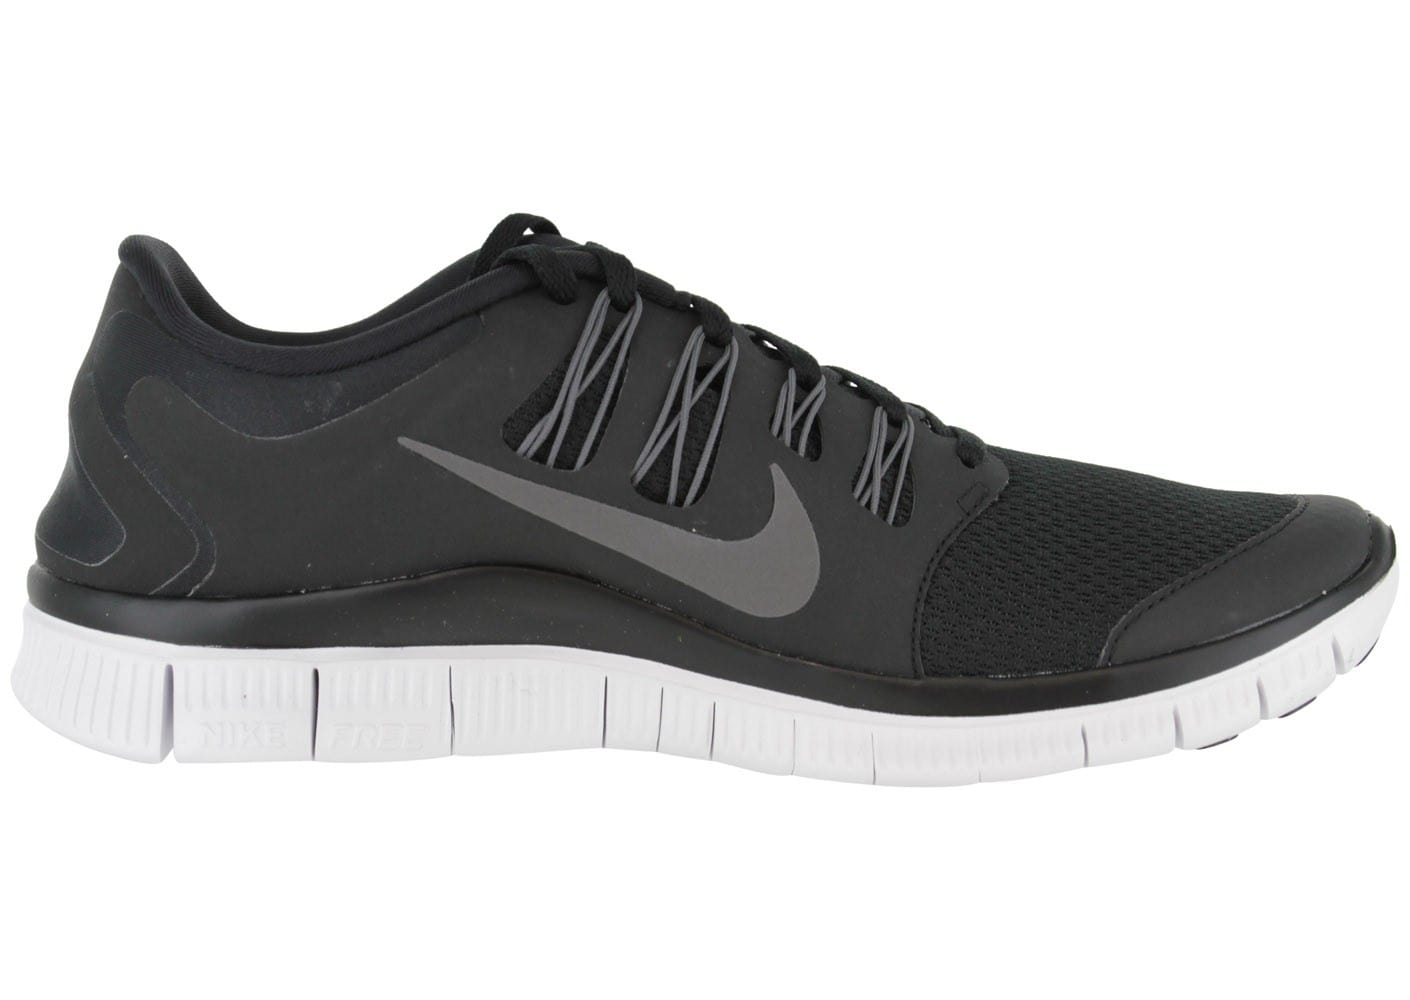 Nike Free 5.0+ Noire Chaussures Baskets homme Chausport